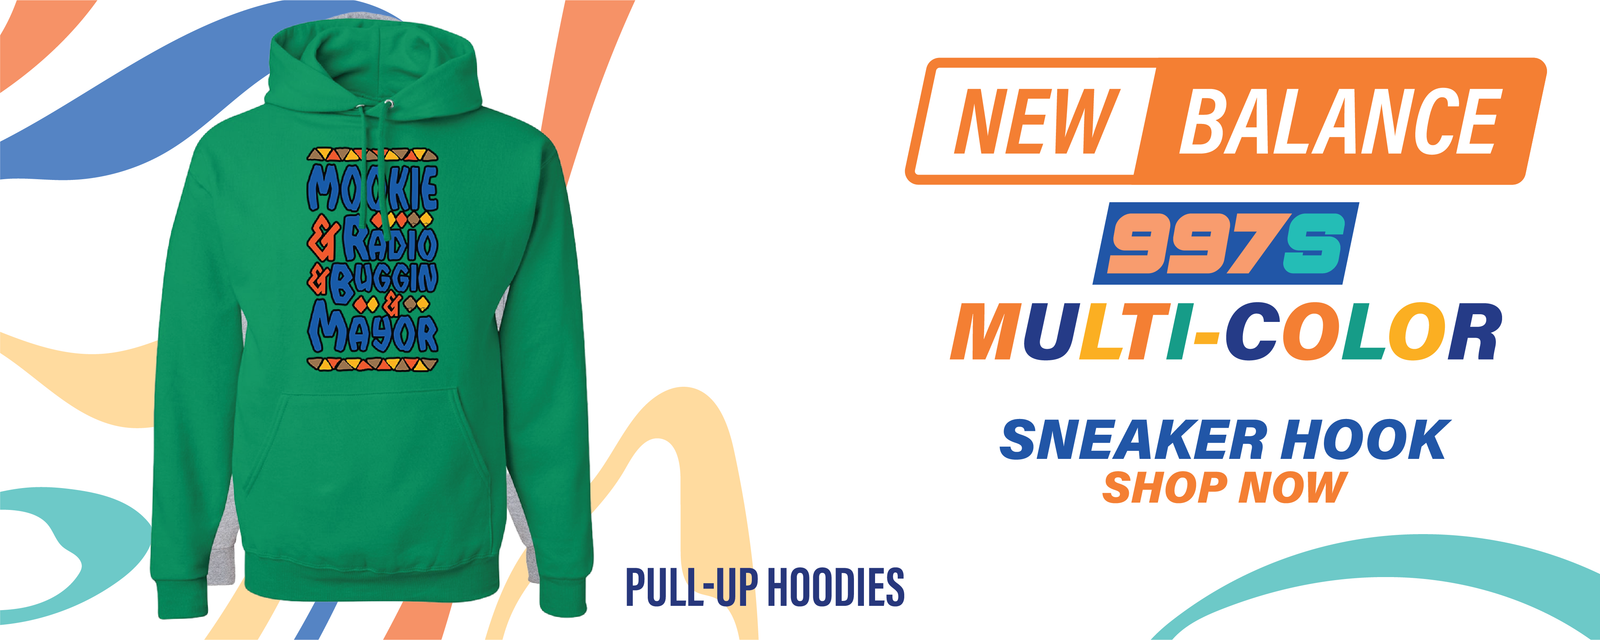 997S Multicolor Pullover Hoodies to match Sneakers | Hoodies to match New Balance 997S Multicolor Shoes